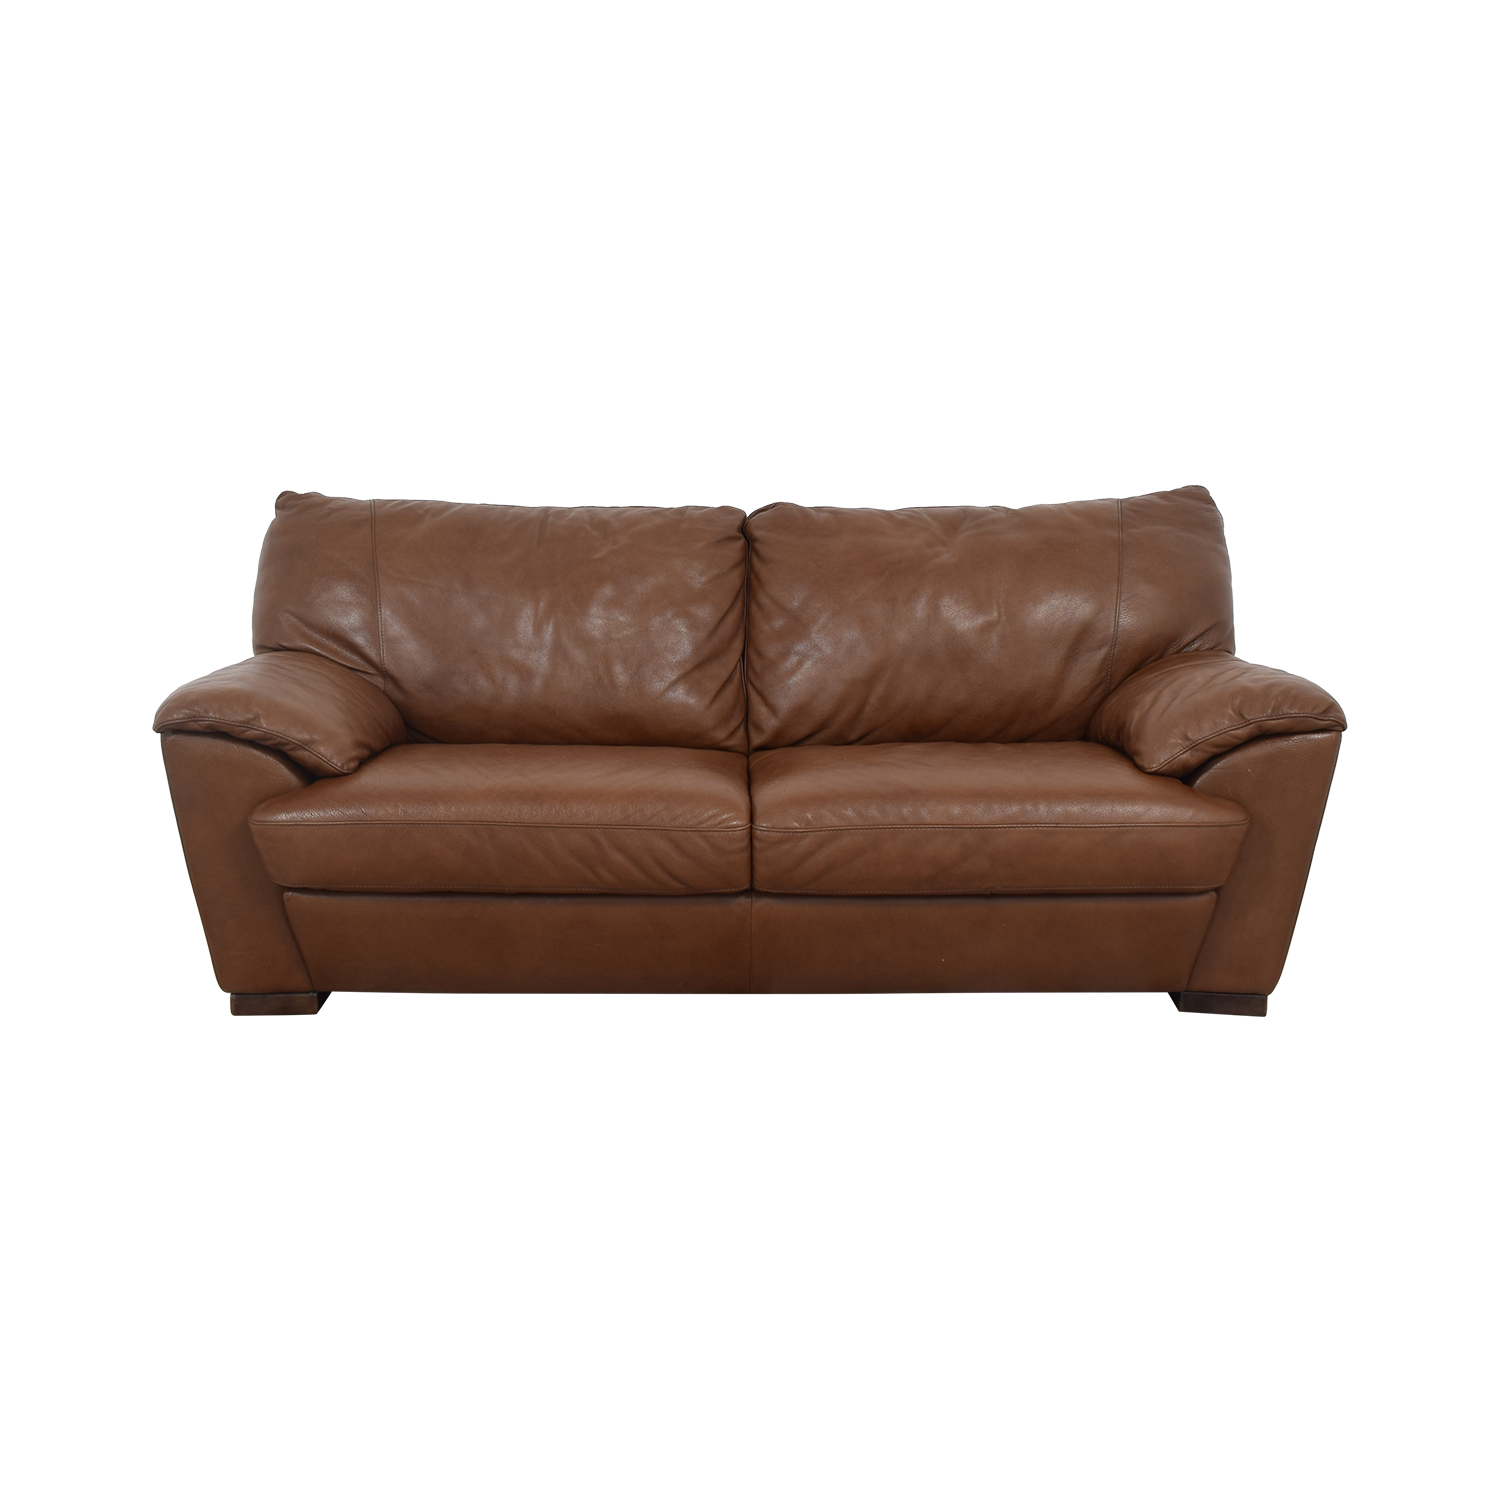 buy Natuzzi Natuzzi Three Seat Loveseat online